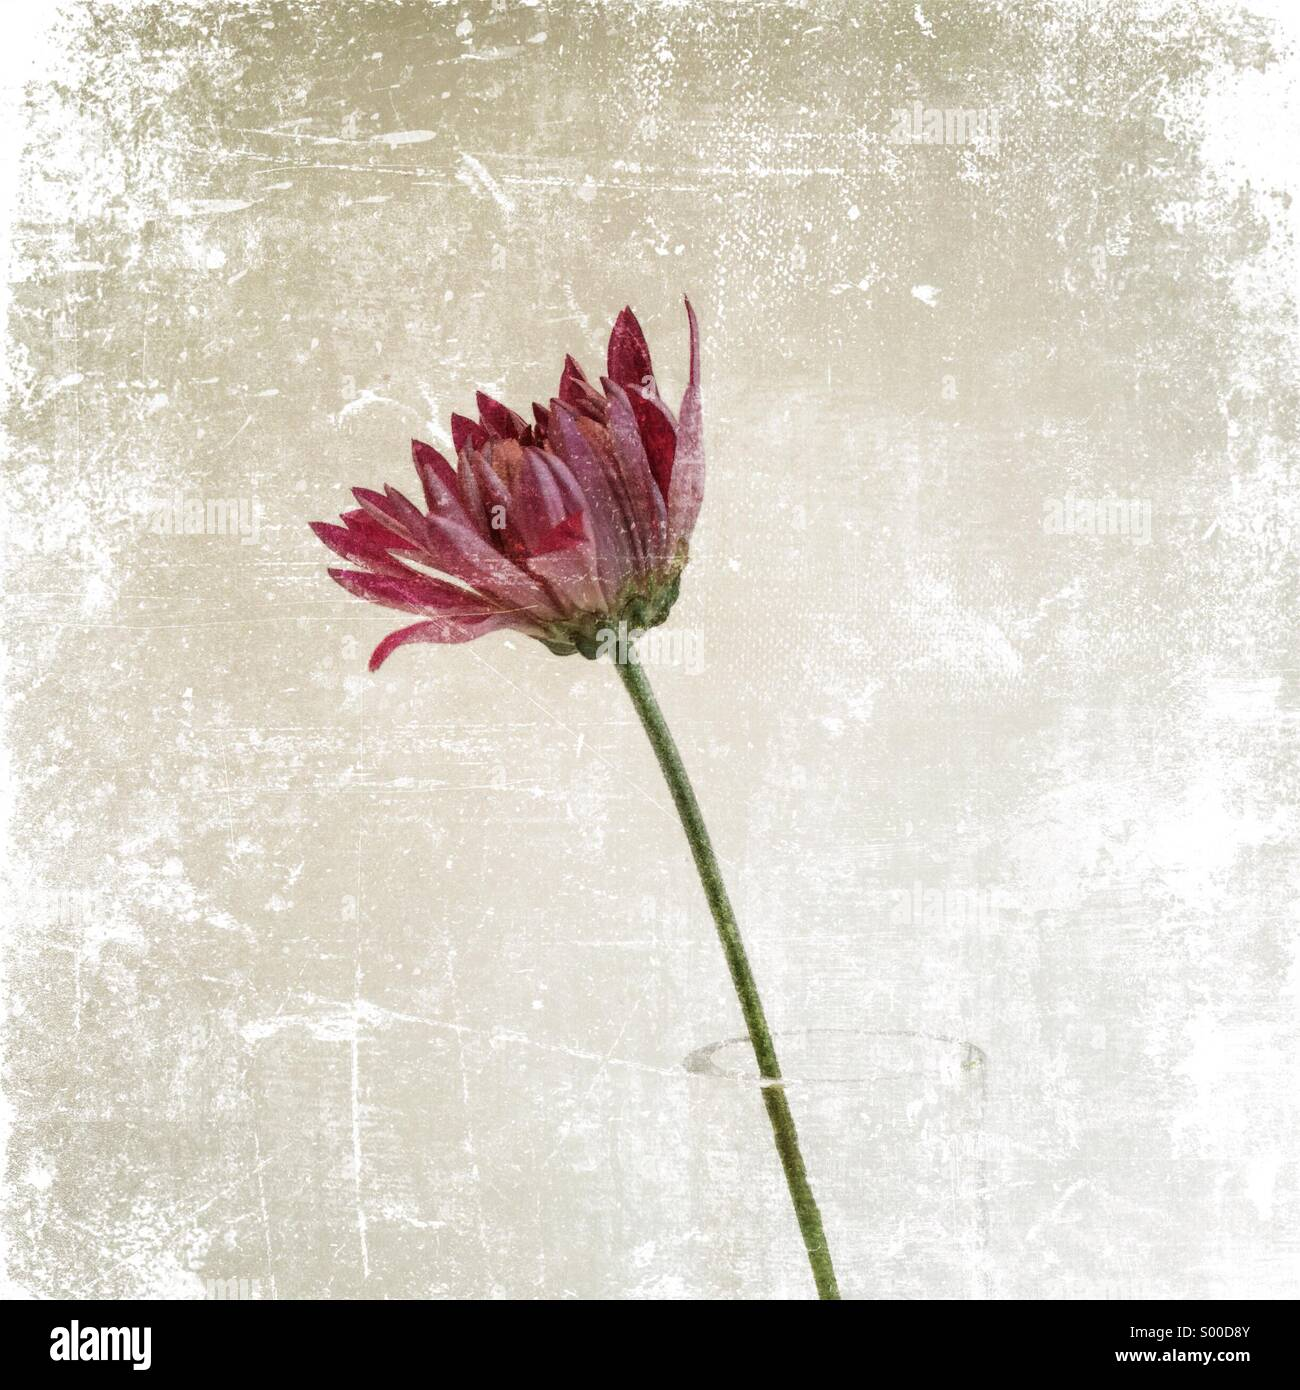 Pink flower with slightly dishevelled petals in a clear vase. Textured still life - Stock Image